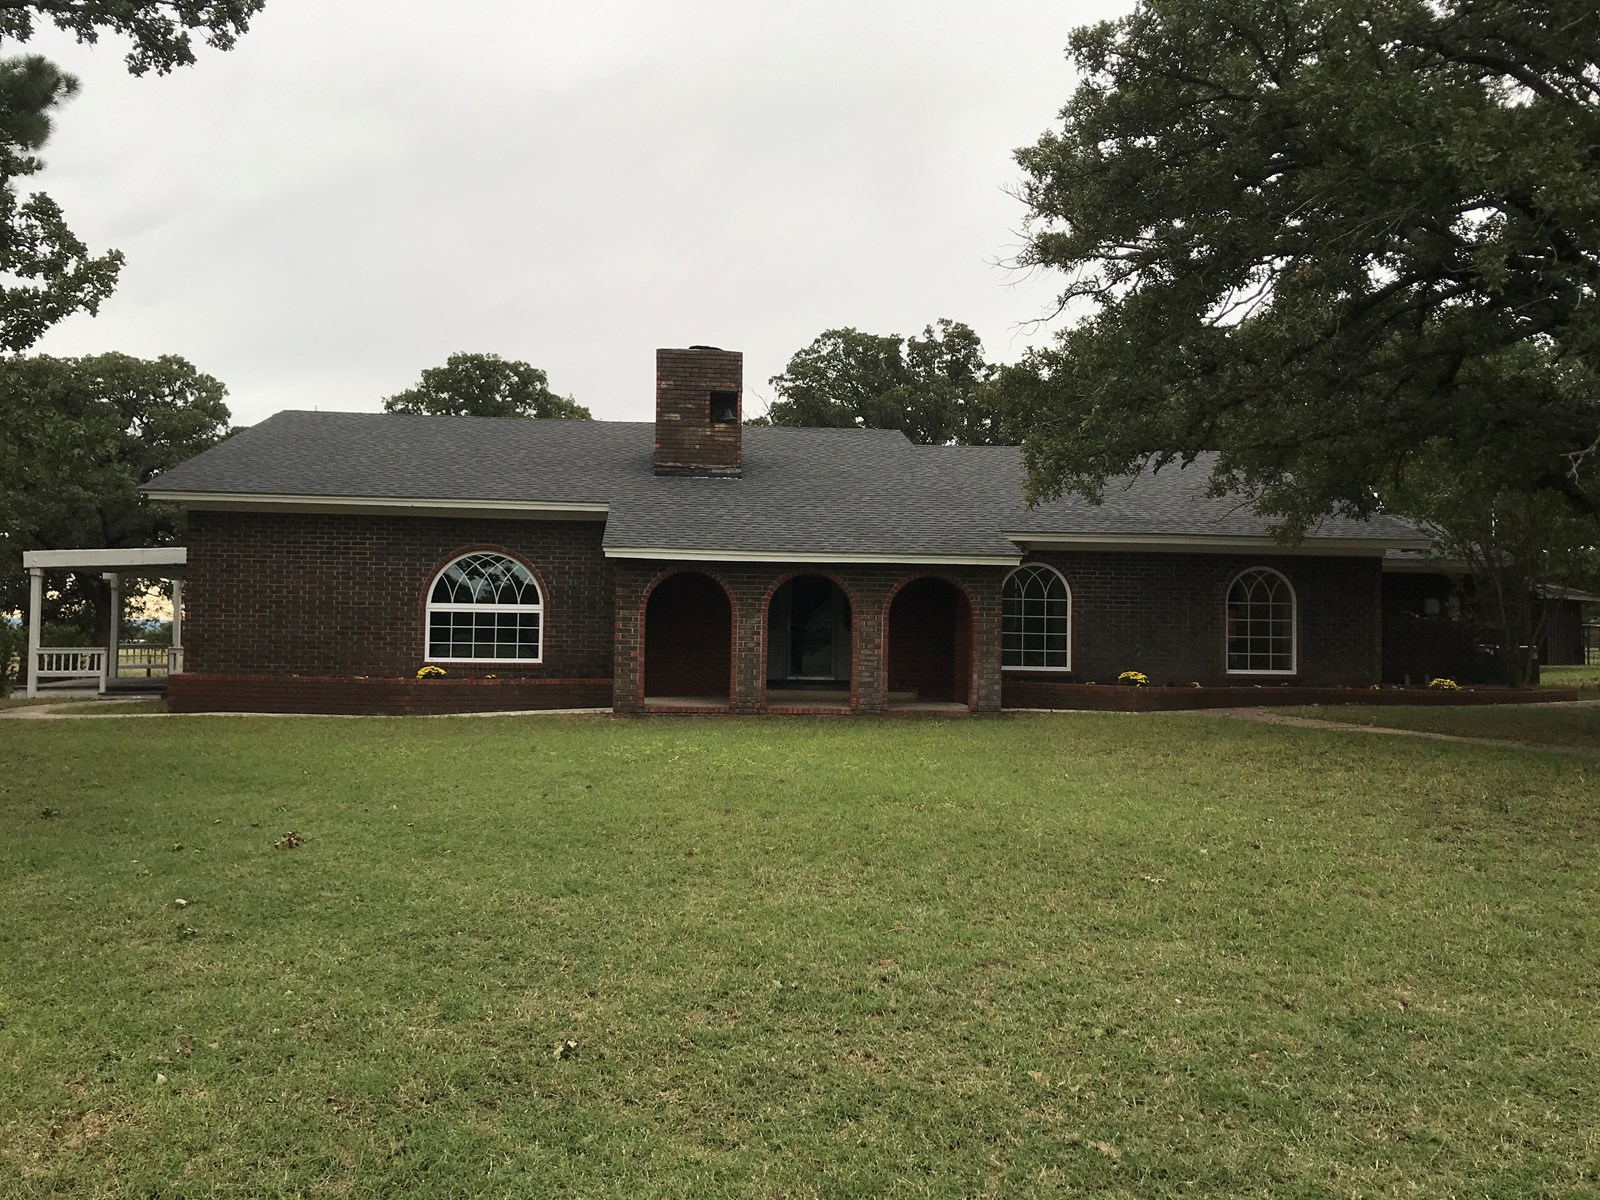 Country Home on Acreage